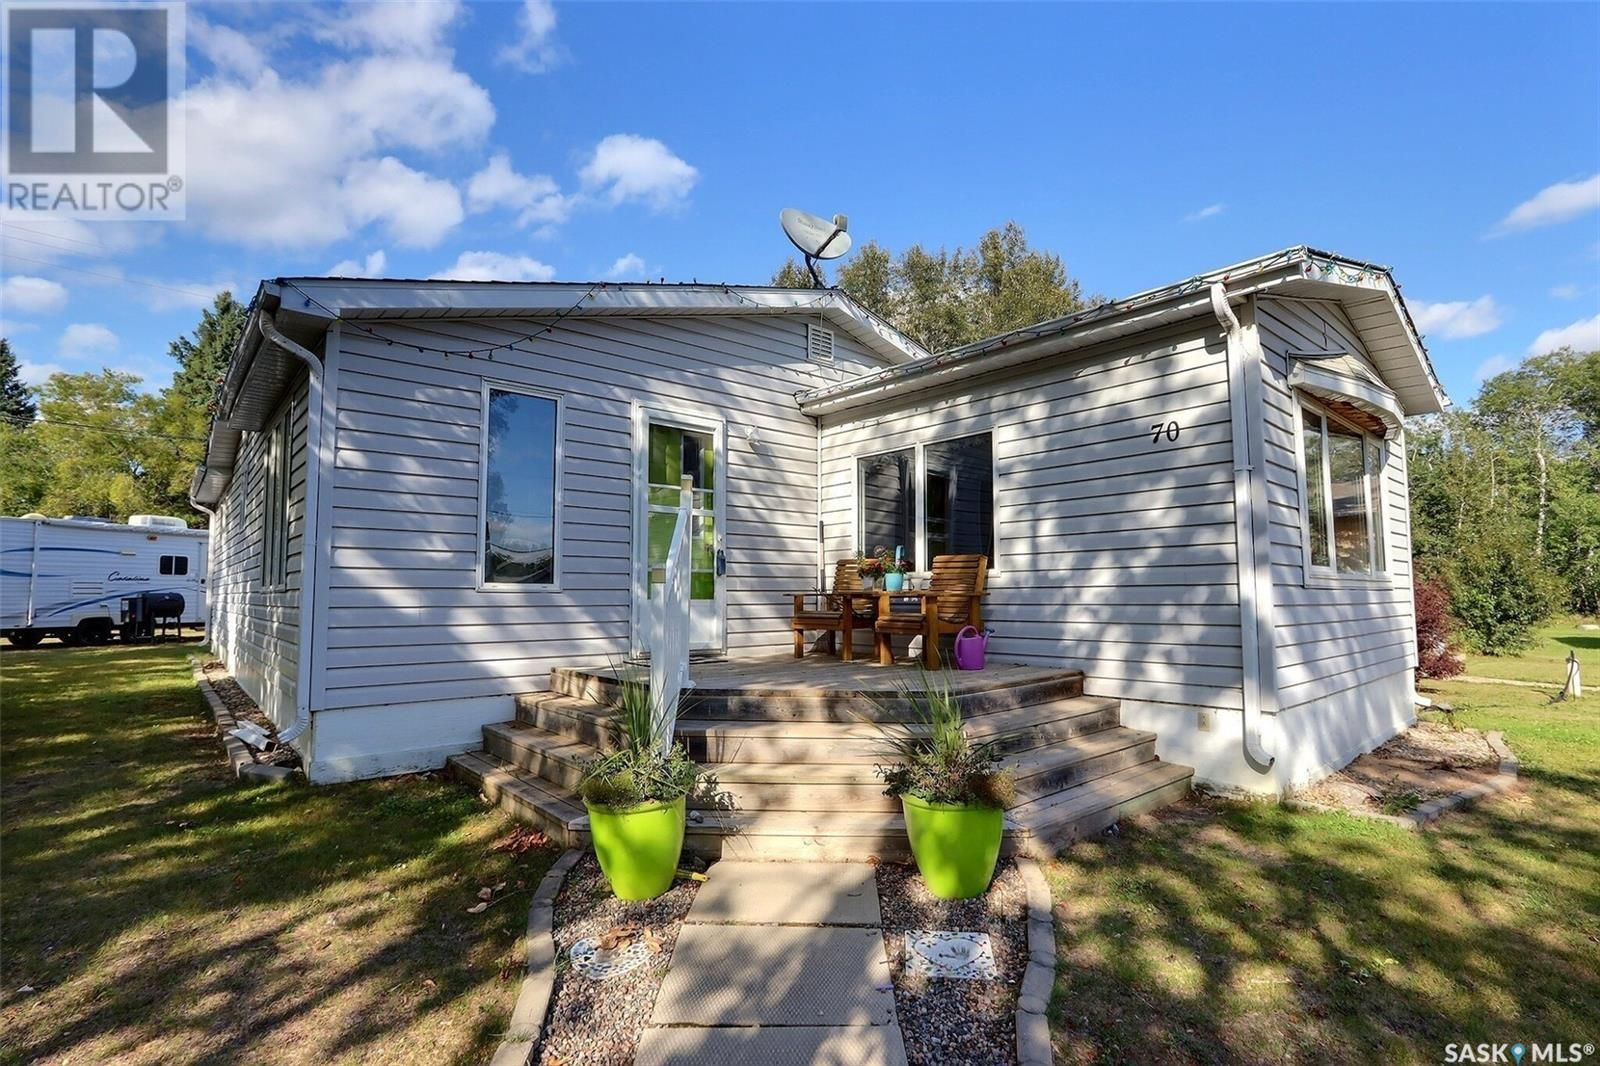 Main Photo: 70 3rd AVE W in Christopher Lake: House for sale : MLS®# SK840526